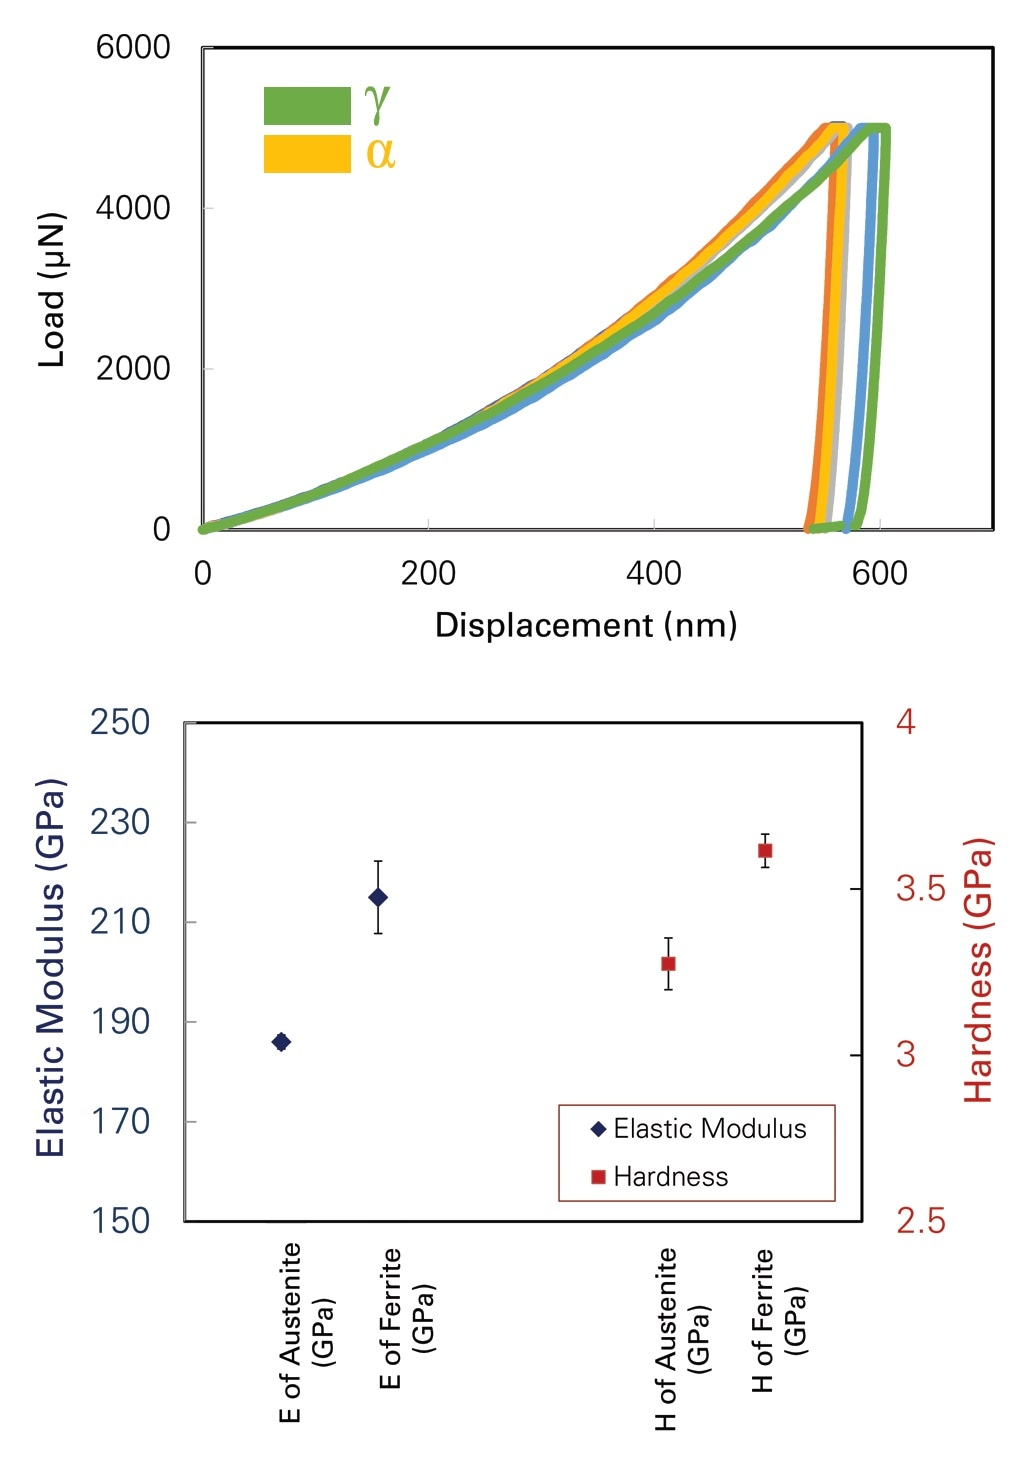 Typical P-h curves from austenitic (?) and ferritic (a) phases (top), elastic modulus and hardness variation in ferrite and austenite (bottom).